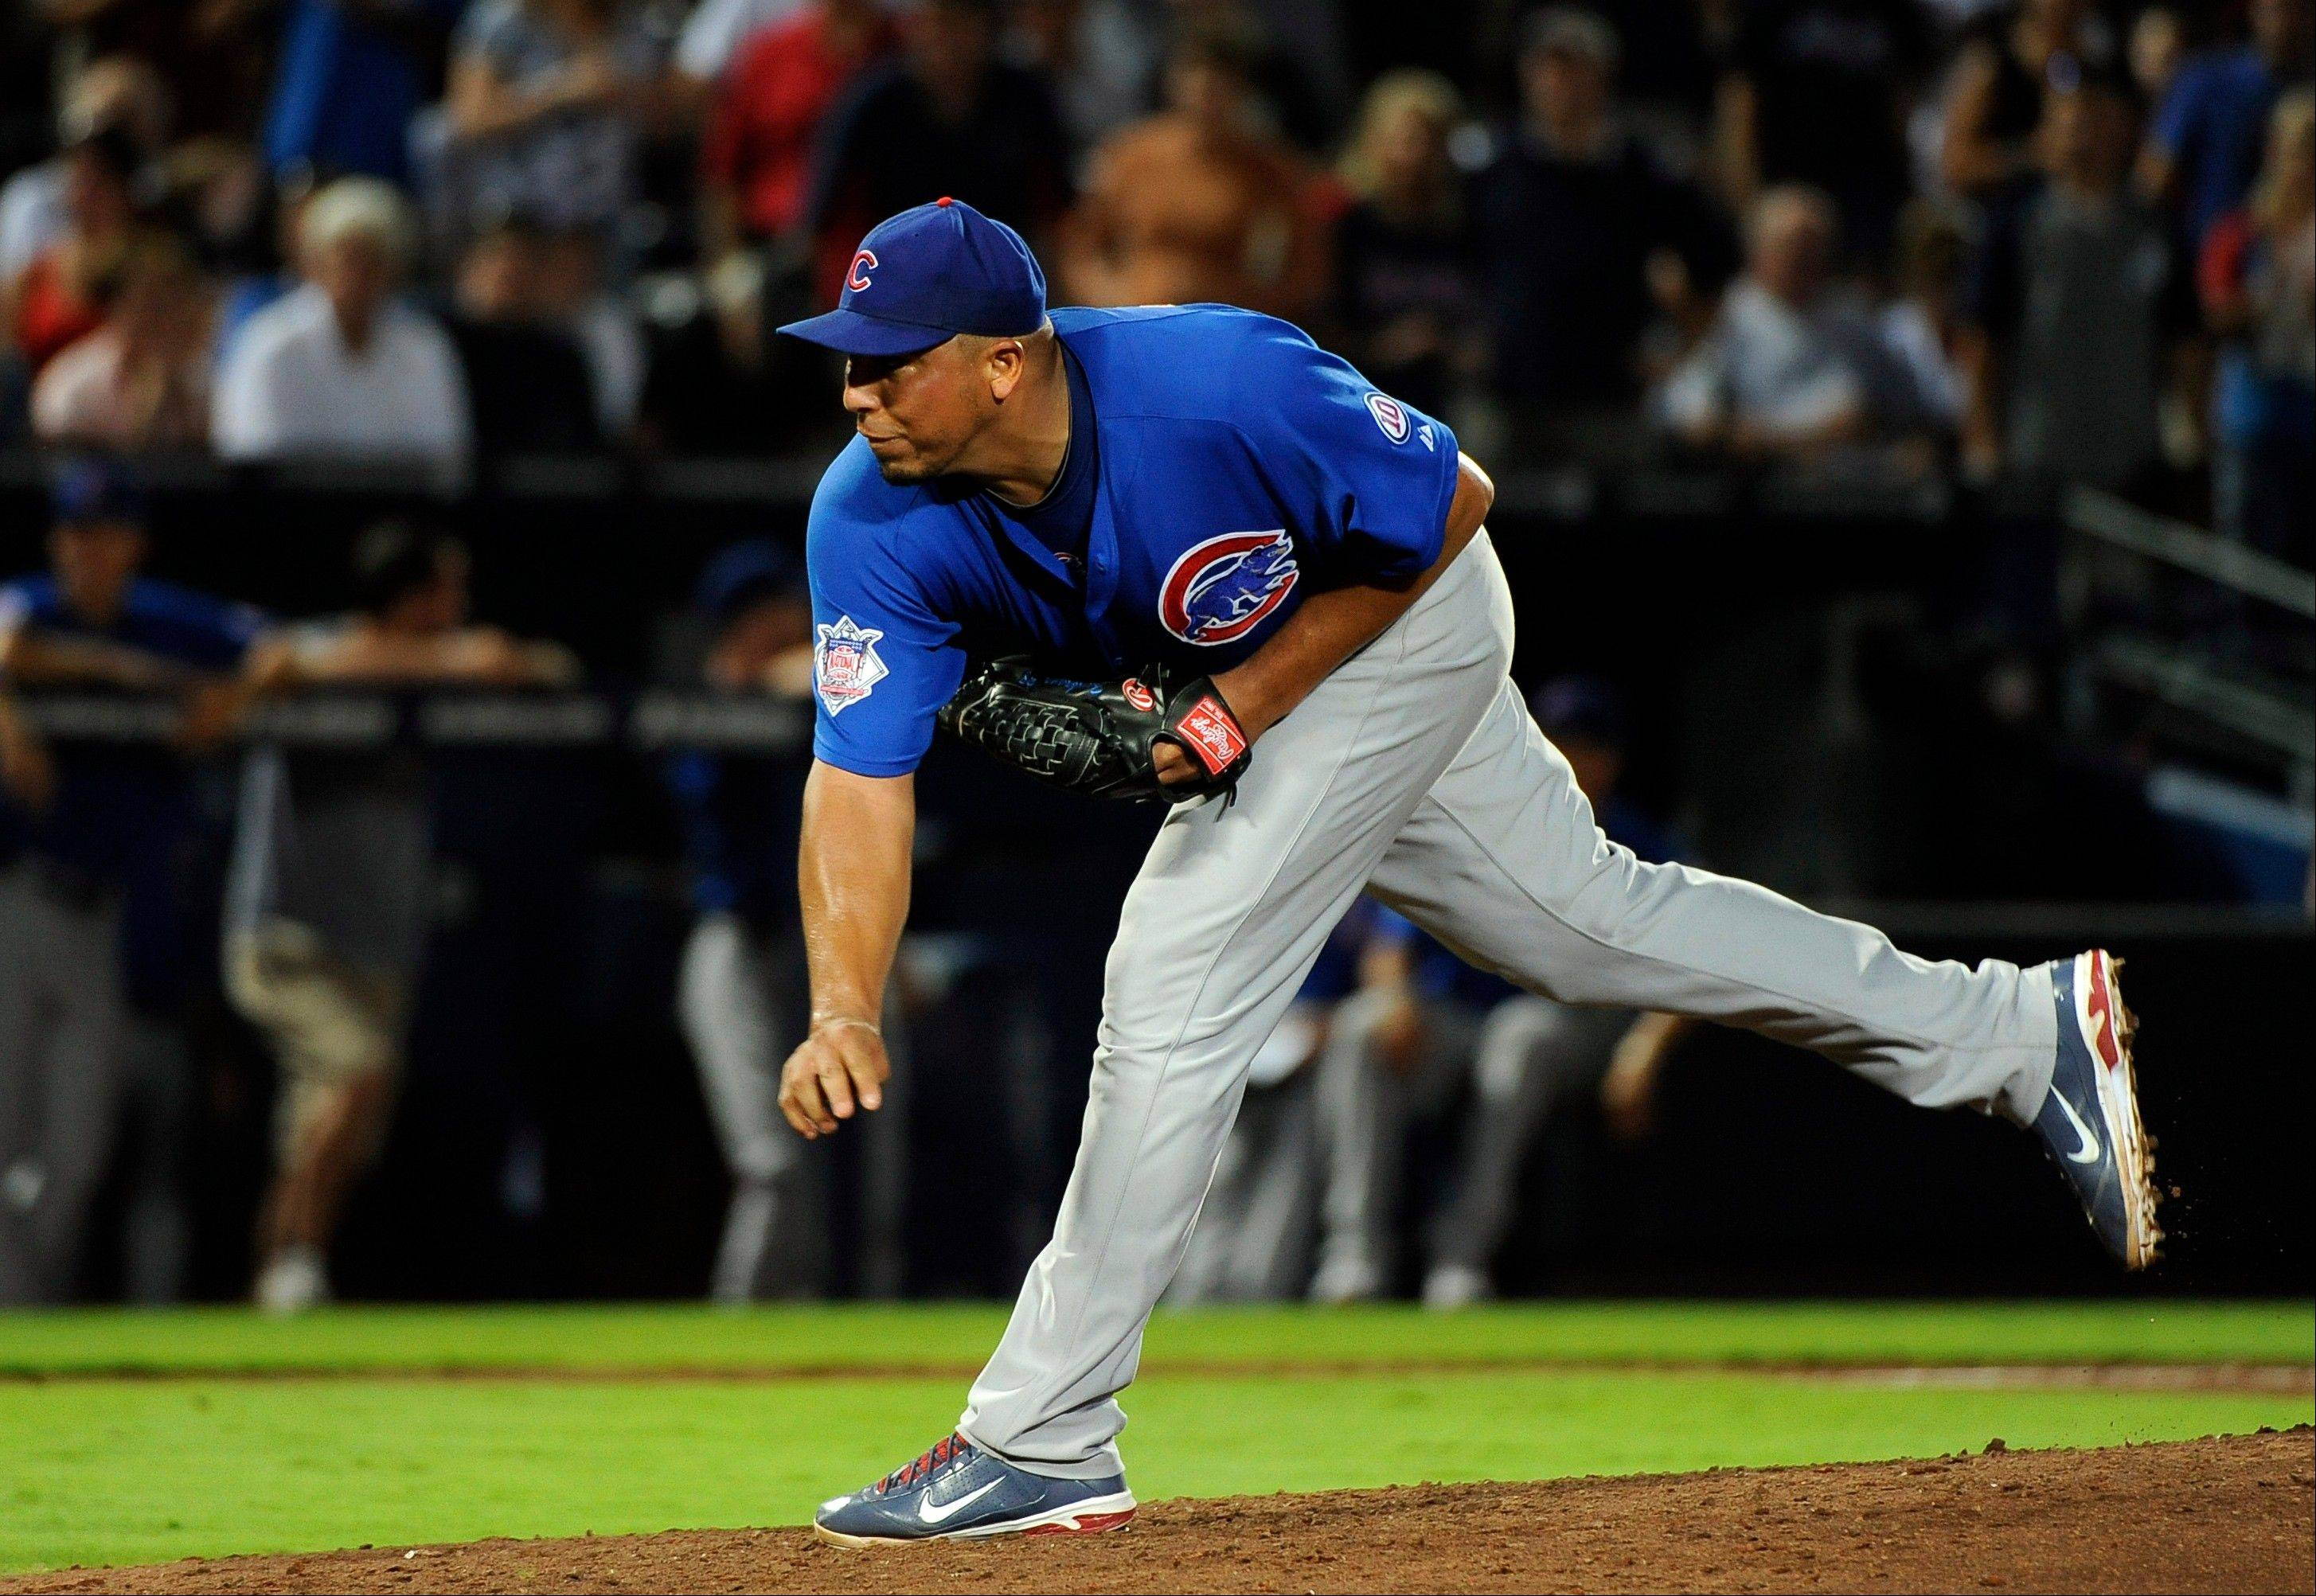 Carlos Zambrano would probably respect the rules of Ozzie Guillen's clubhouse, so trading for the disgruntled Cubs pitcher makes a lot of sense.